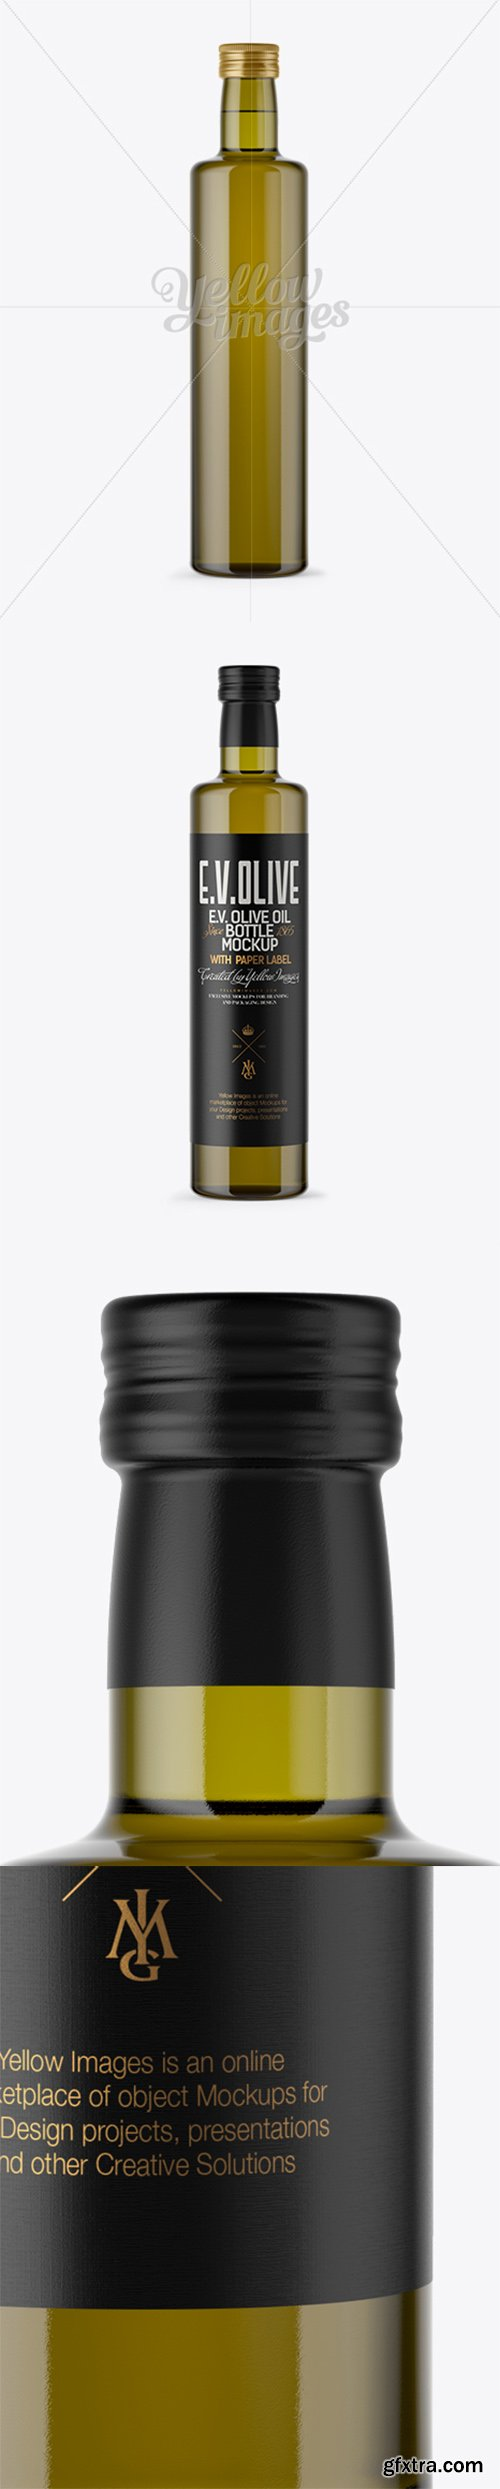 750ml Antique Green Glass Bottle with Olive Oil Mockup 14213